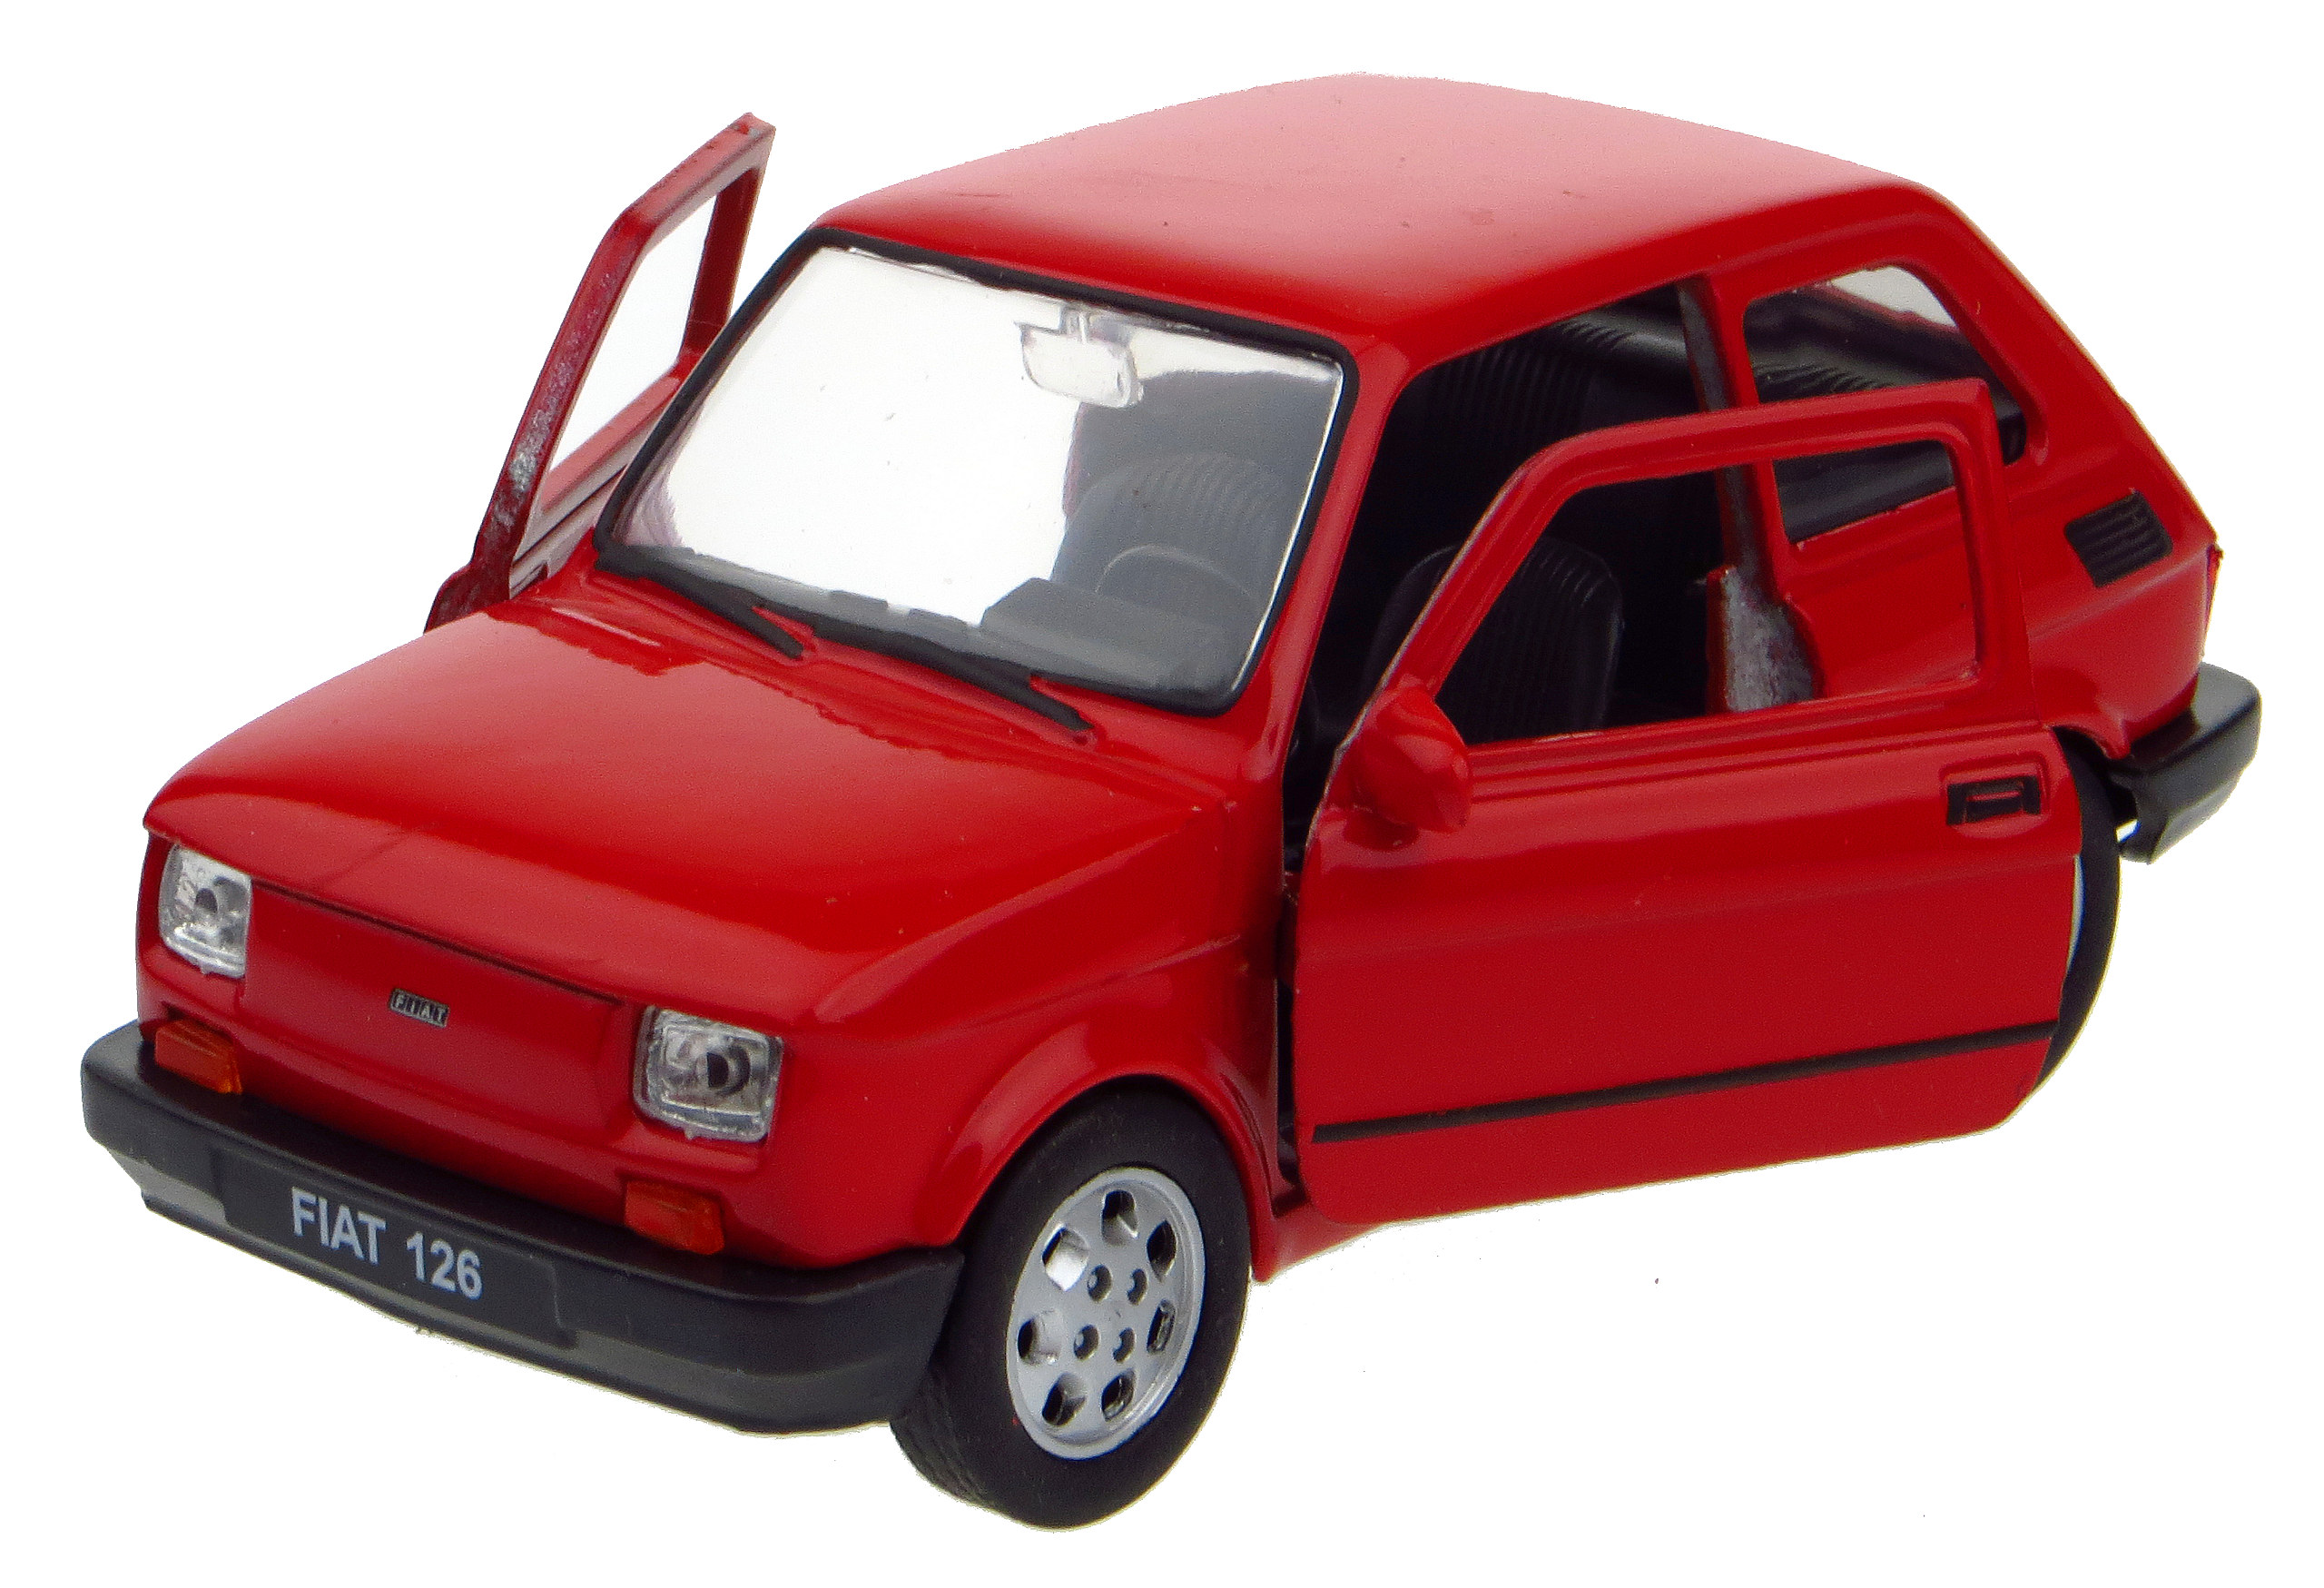 FIAT 126 P Metal Model Welly 1:34 Red